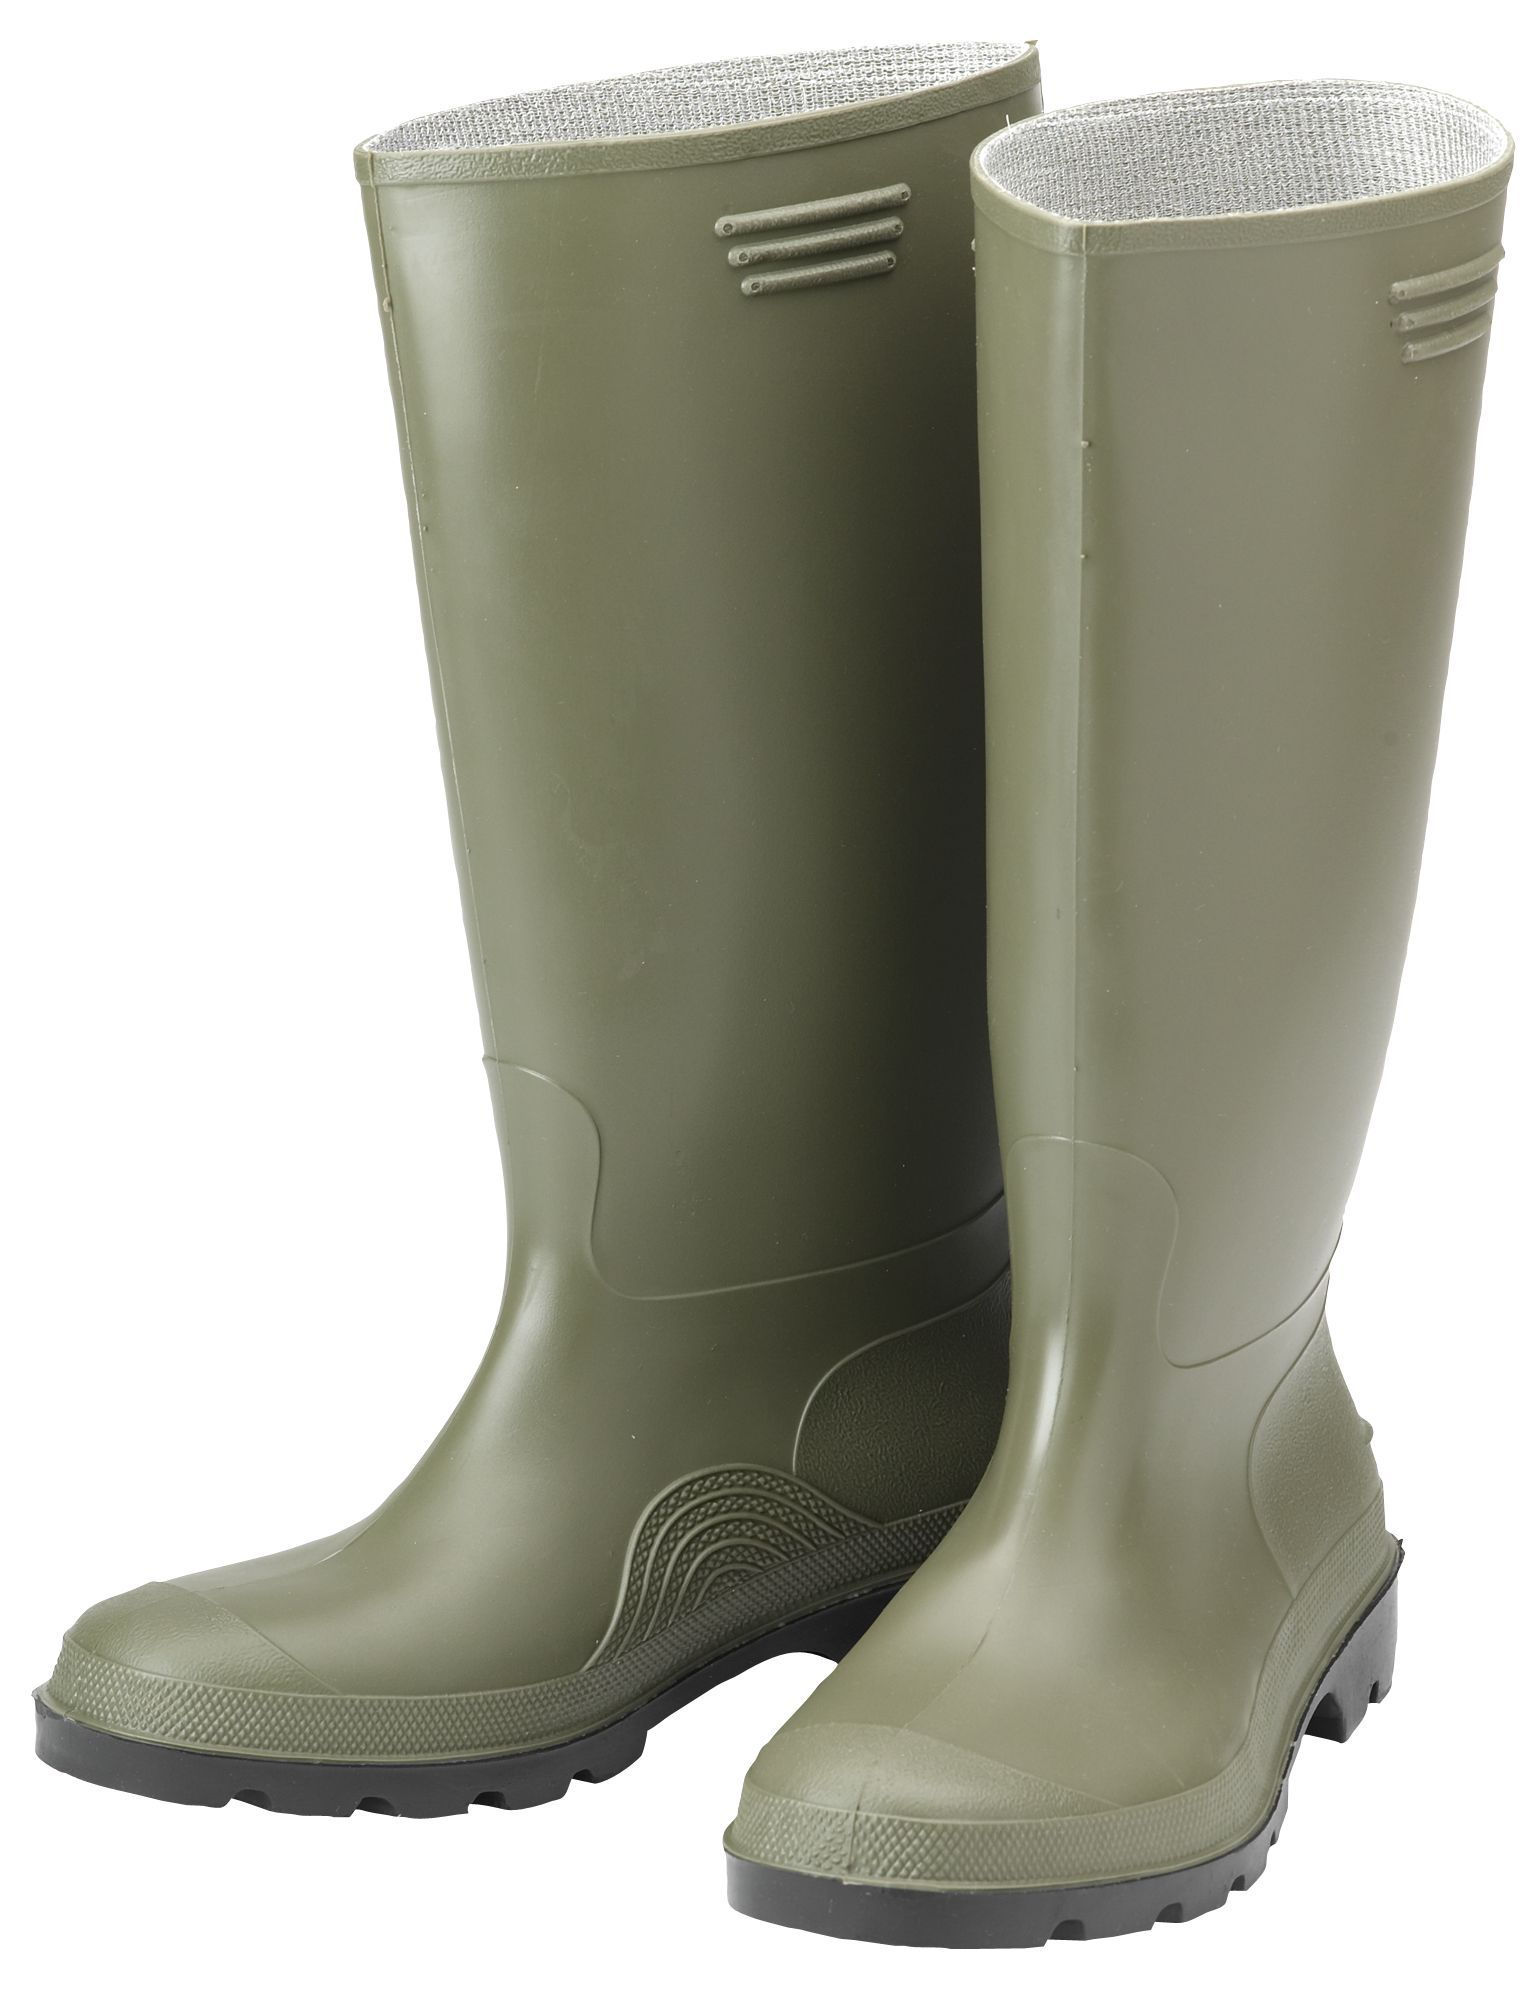 B&Q Green Wellington Boots, Size 5 | Departments | DIY at B&Q